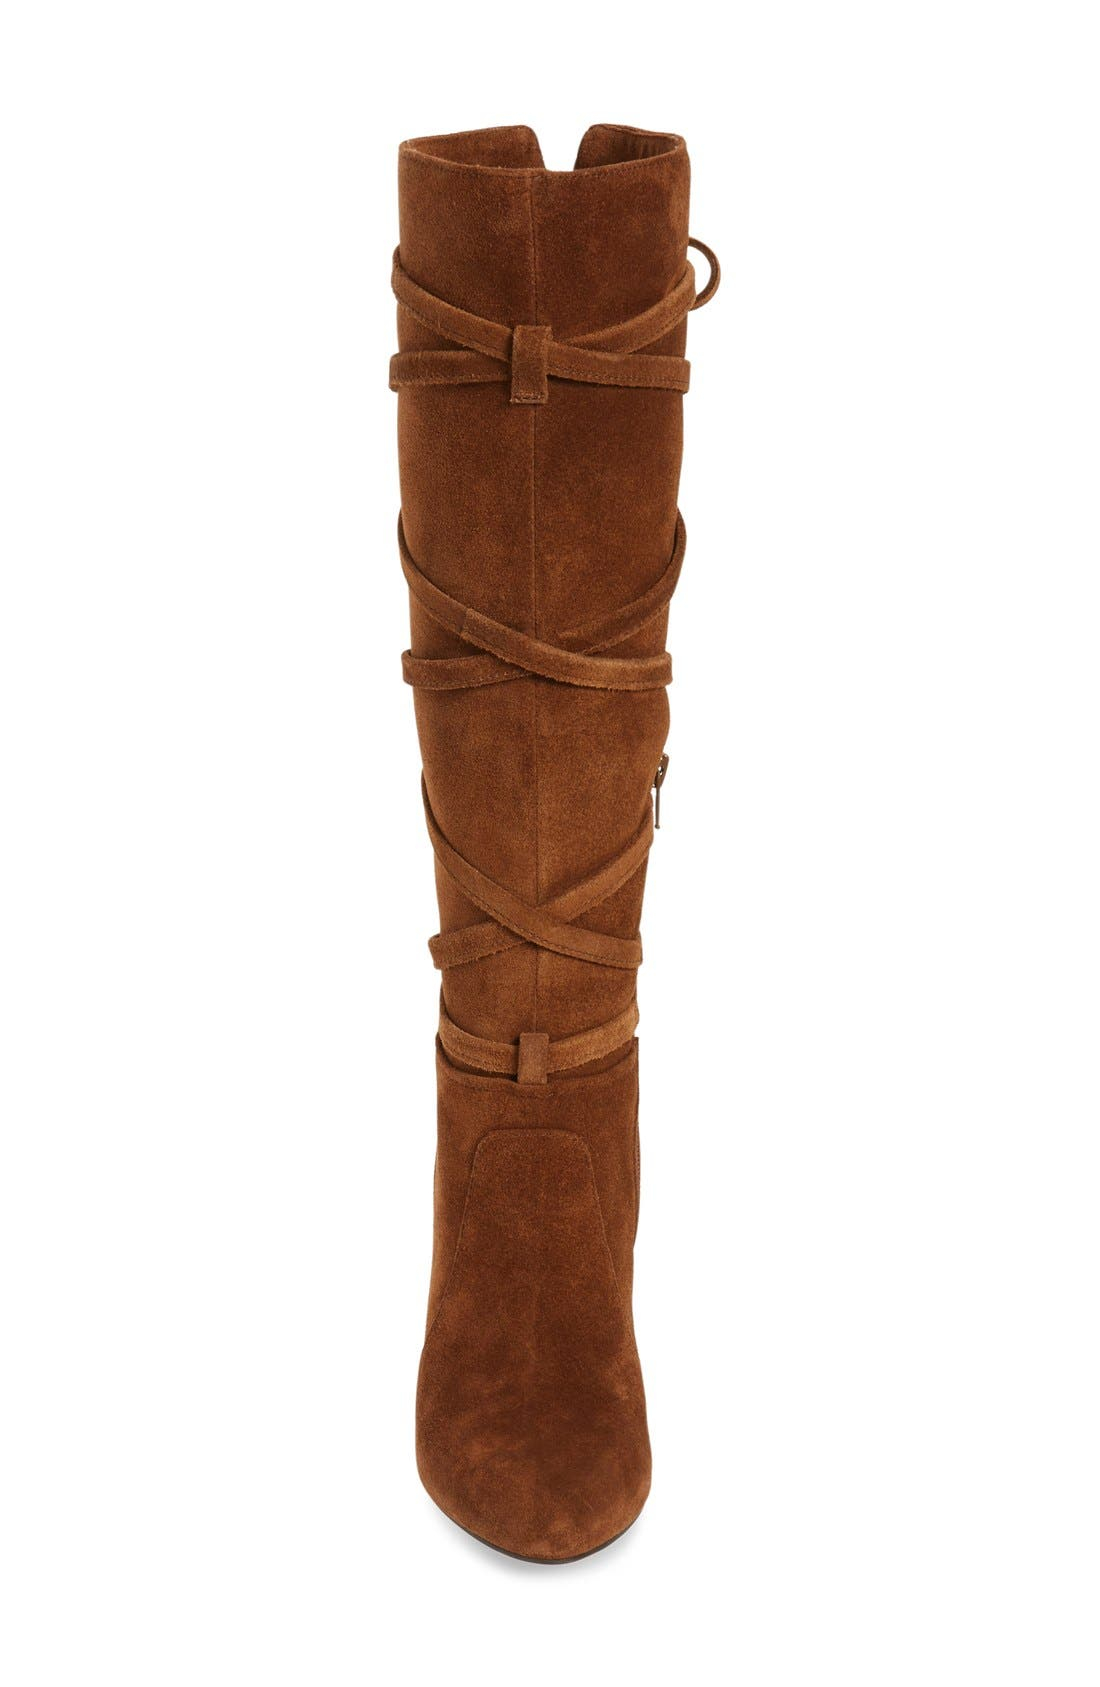 Alternate Image 3  - Vince Camuto 'Millay' Knee High Boot (Women)